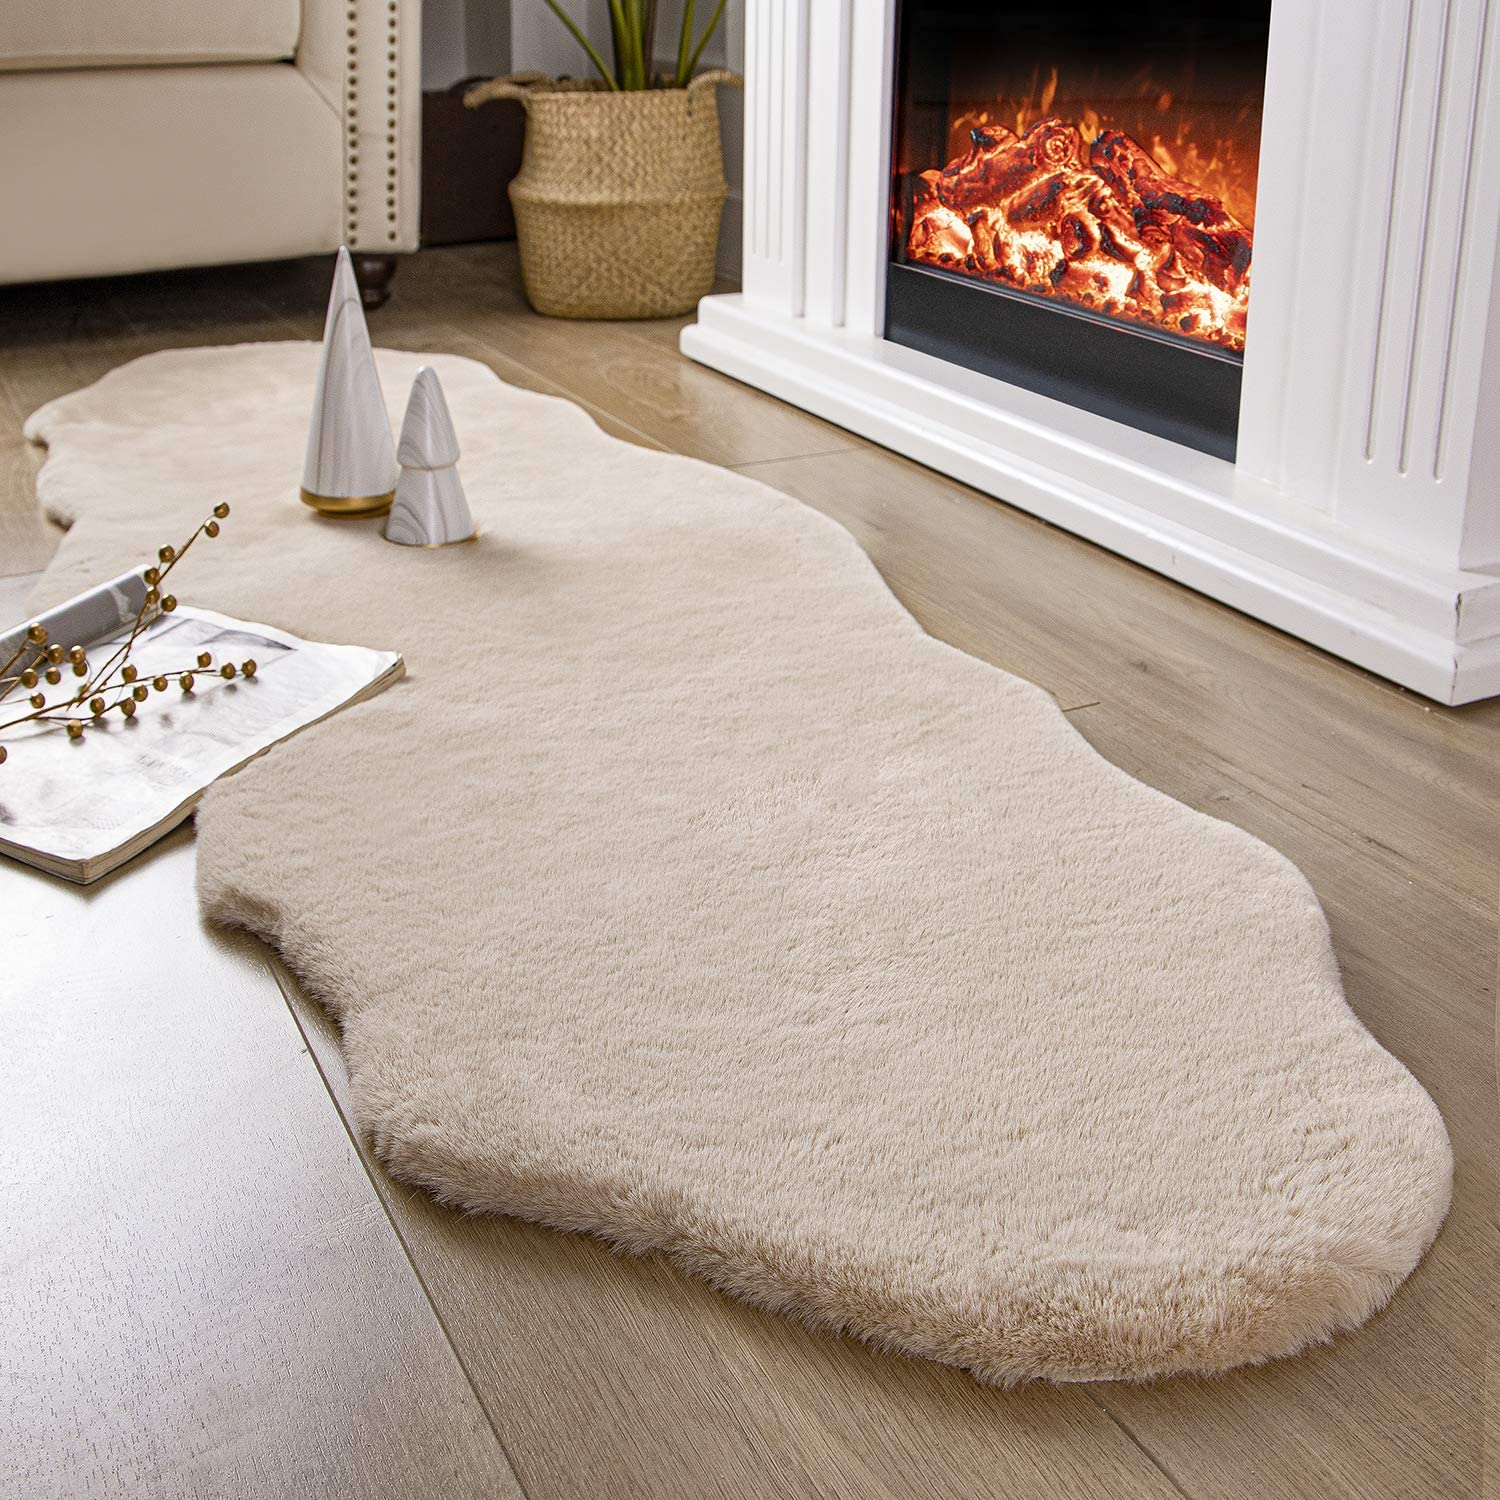 Ashler Ultra Soft Faux Rabbit Fur Chair Couch Cover Area Rug for Bedroom Floor Sofa Living Room Beige 2 x 6 Feet